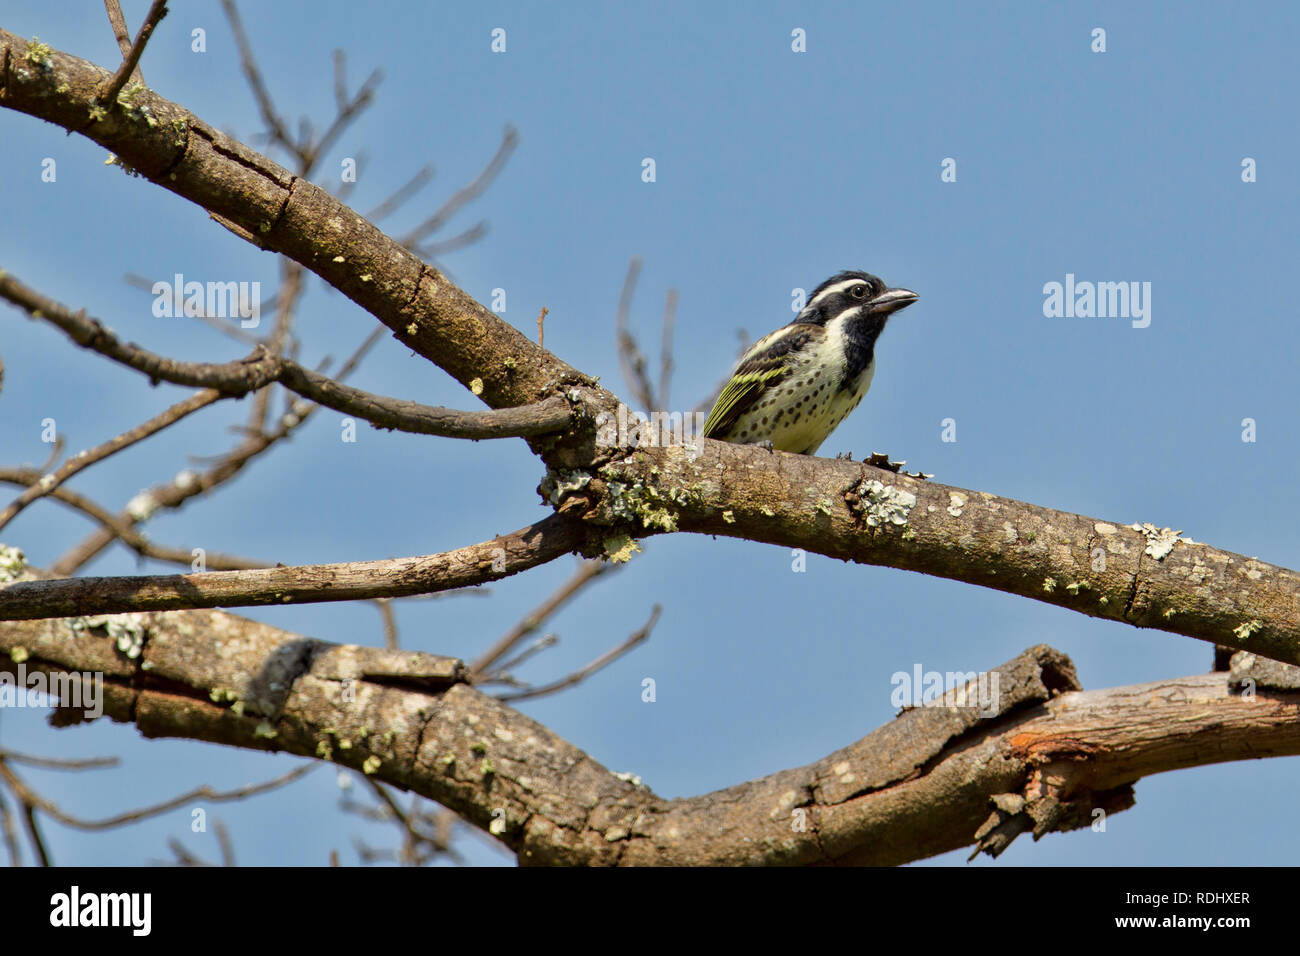 A Spot-flanked barbet, Tricholaema lacrymosa perches in a tree in Akagera National Park, Parc National de l'Akagera, Eastern Province, Rwanda. - Stock Image